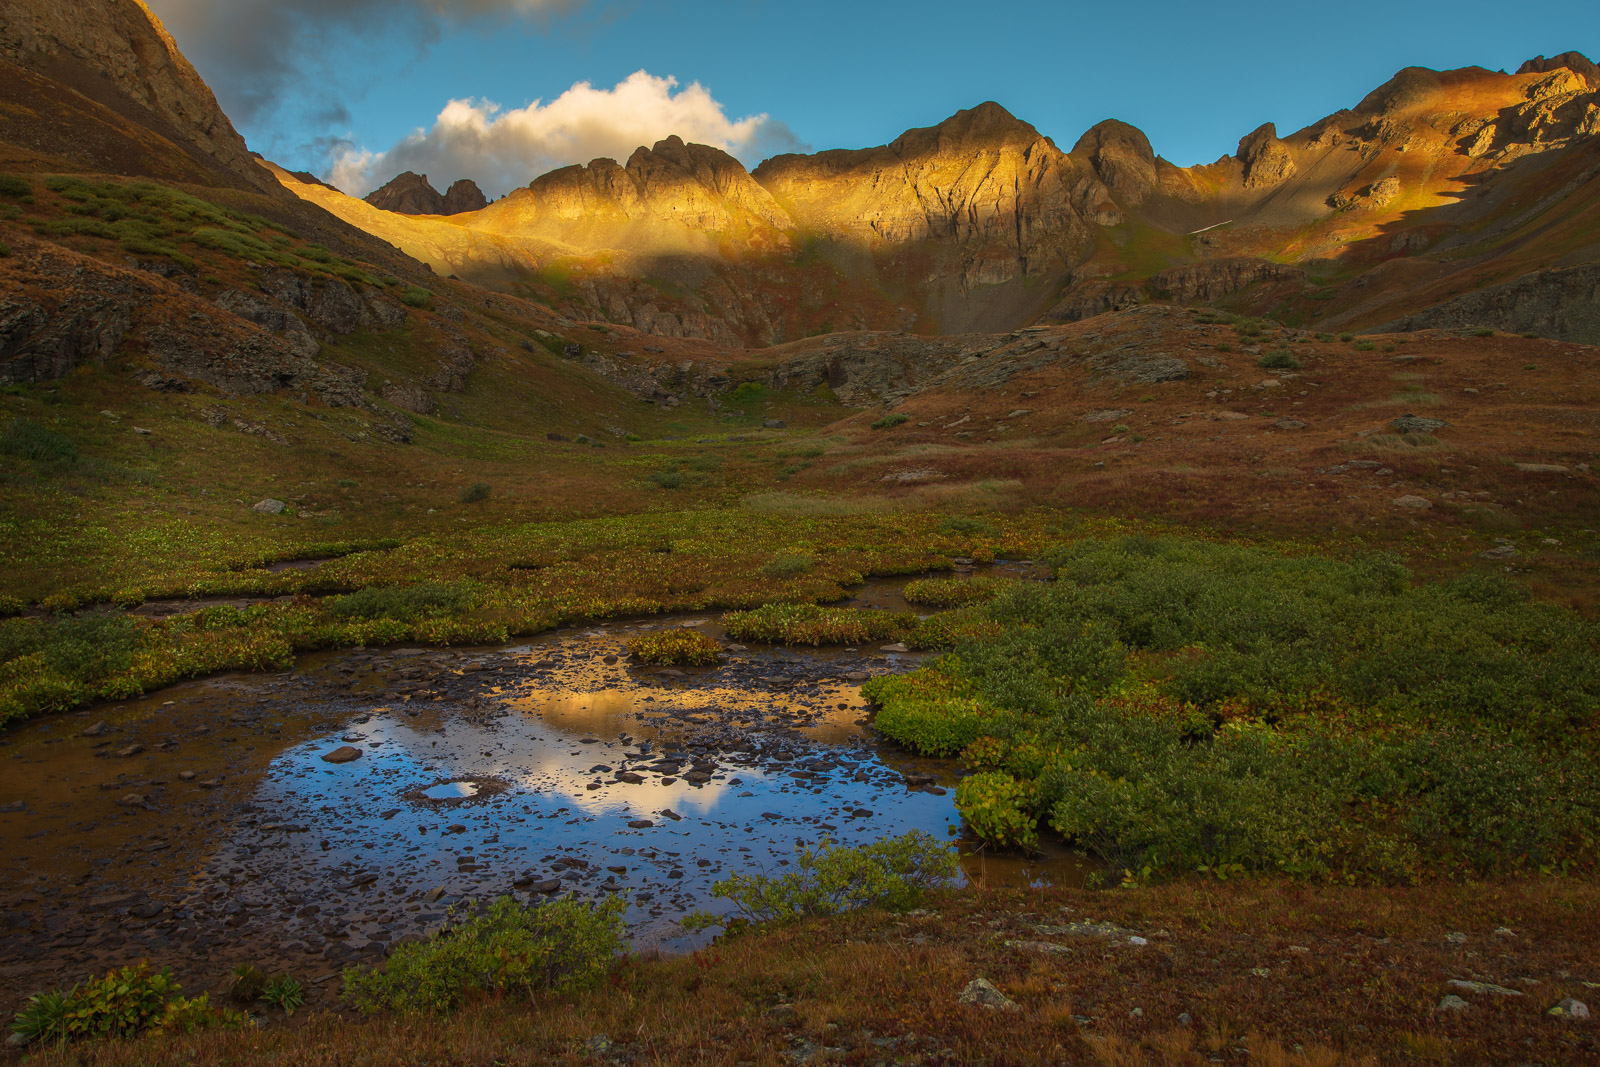 Early autumn tundra and reflections of massive granite peaks in Clear Lake Basin, Colorado.